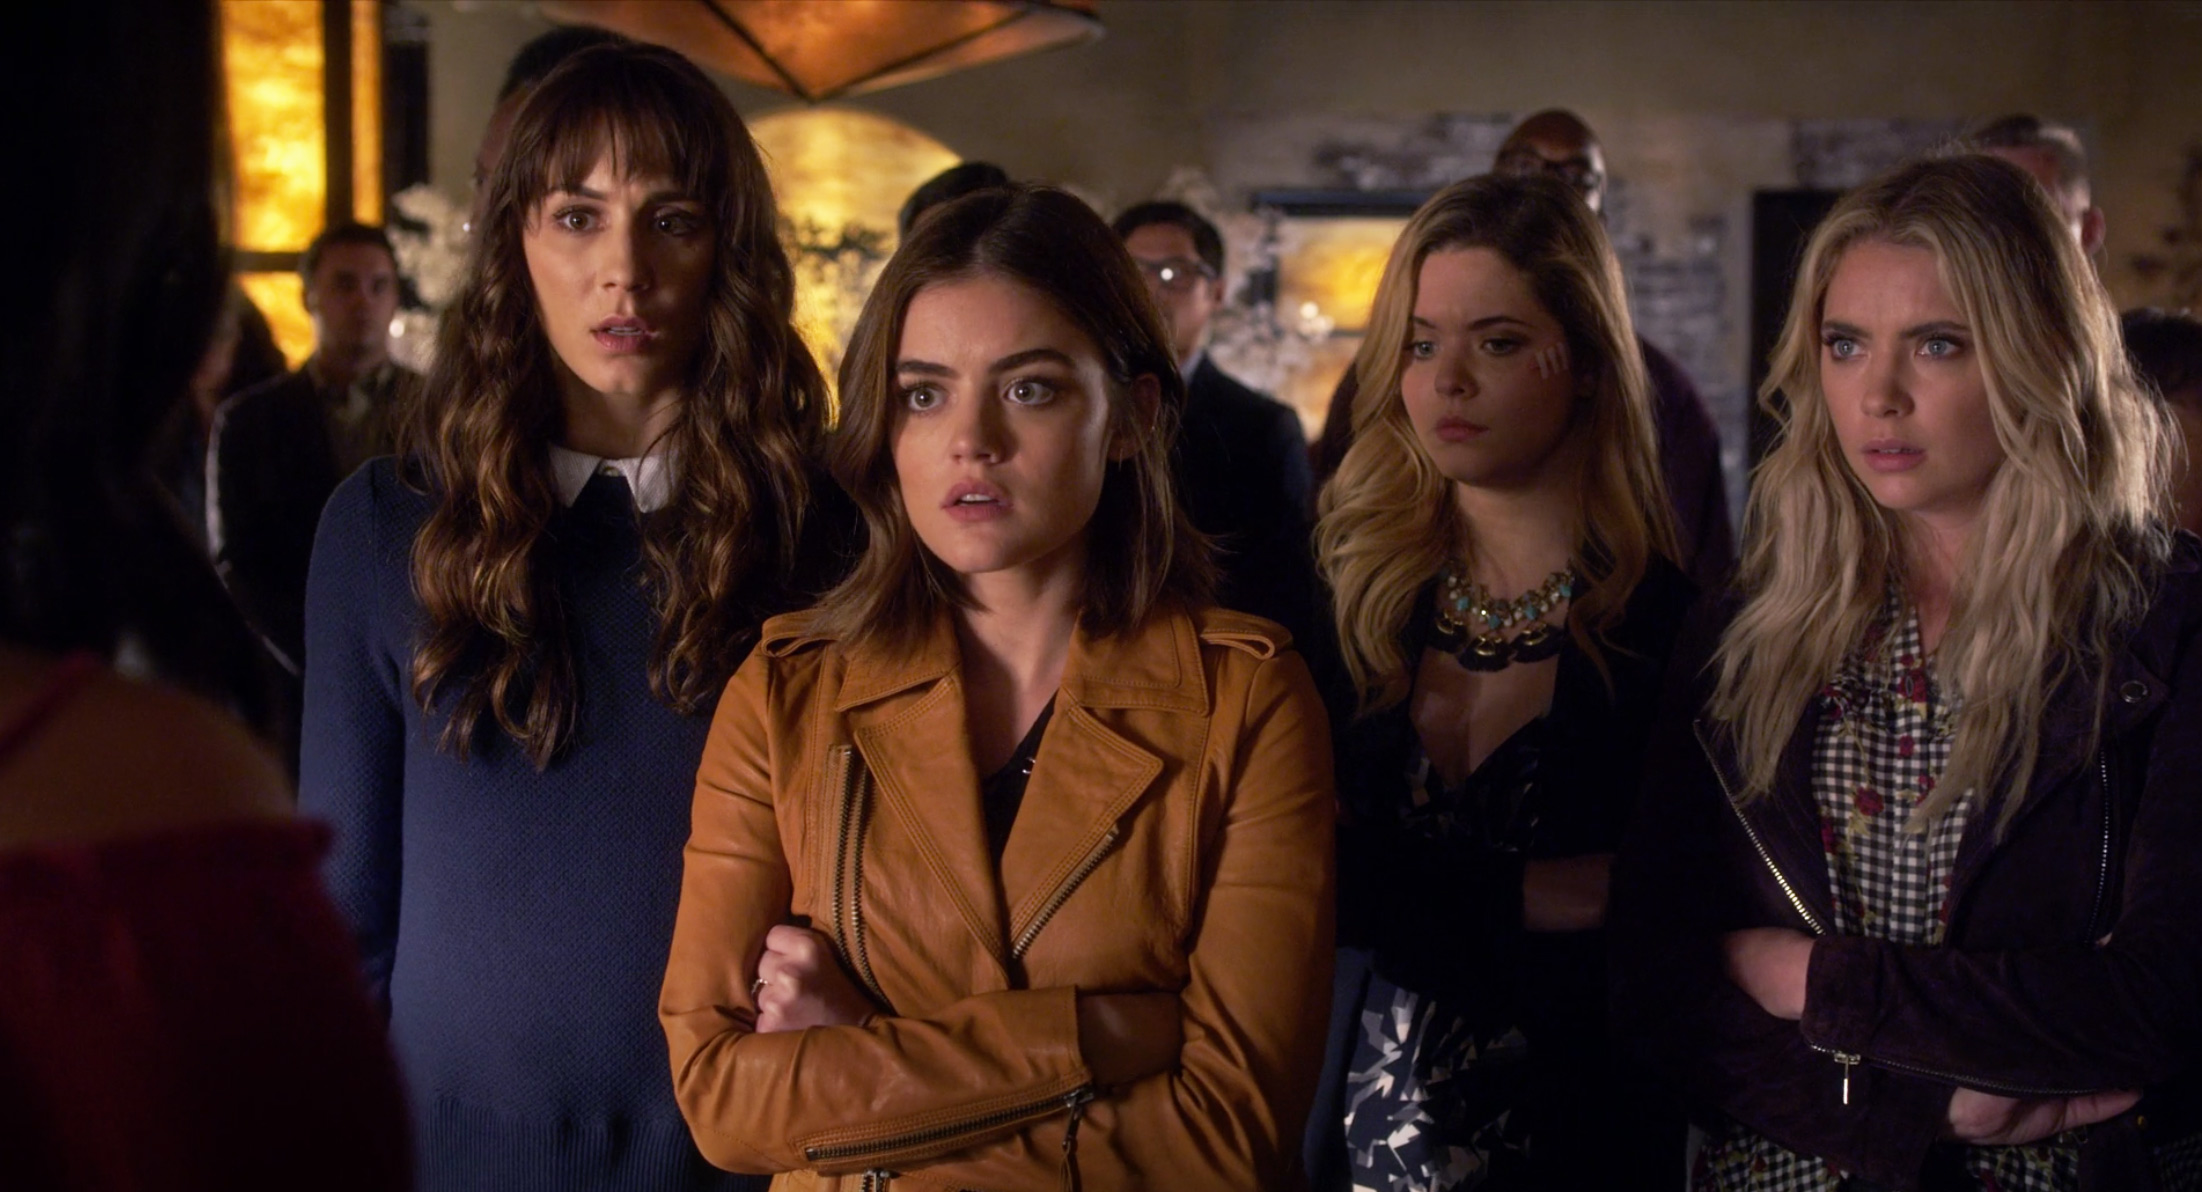 Pretty Little Liars Season 7 Streaming